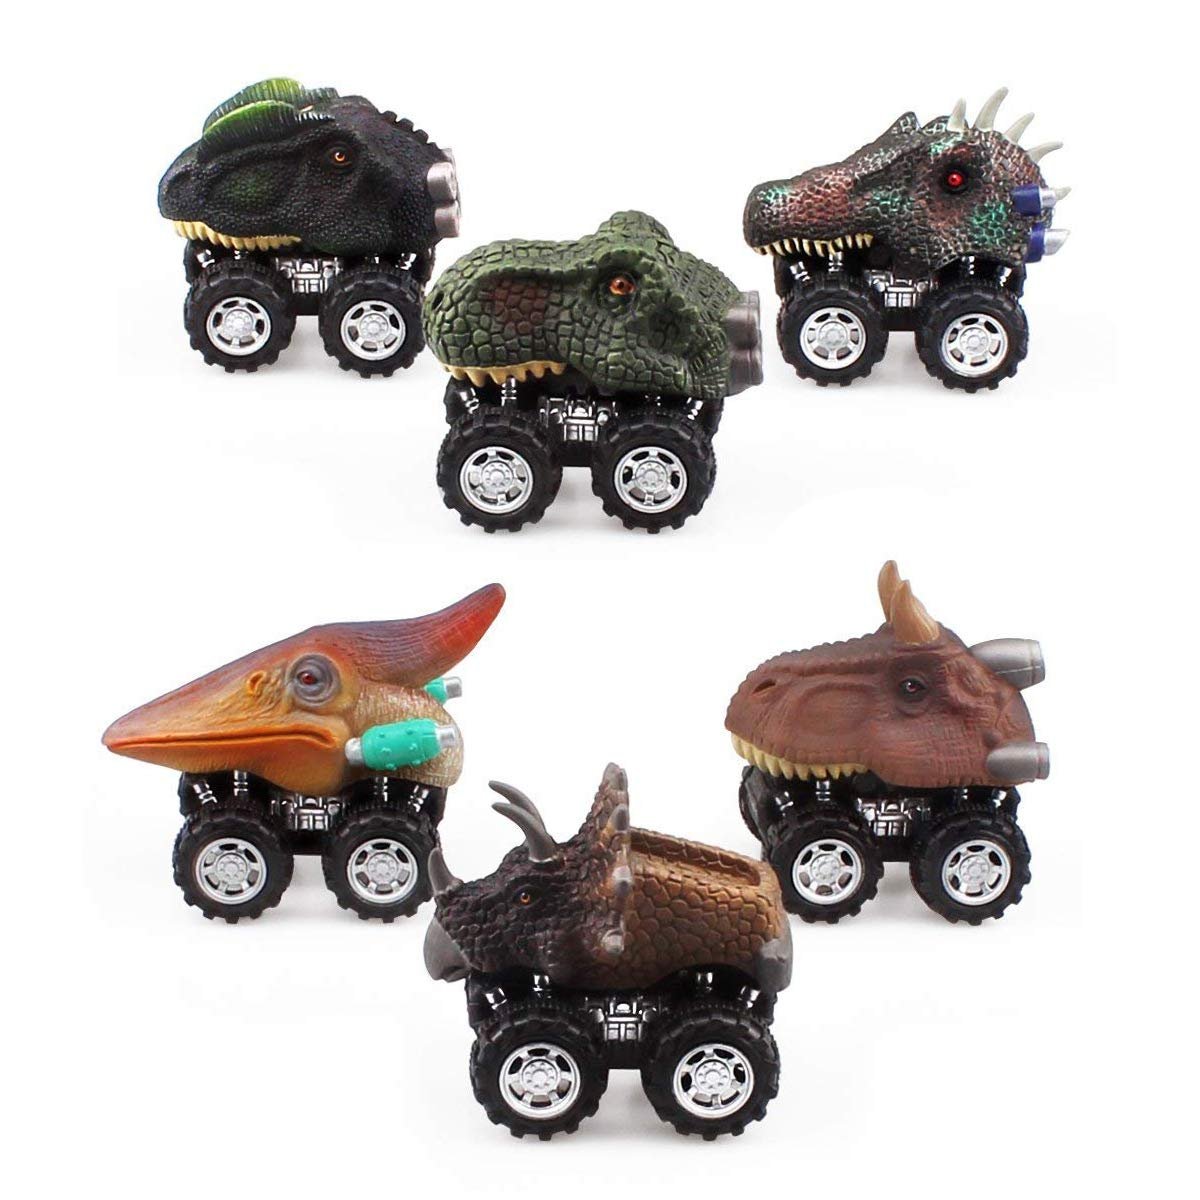 ZHMY Dinosaur Pull back car, 6 PACK 2.8in MINI Dinosaur Model Cars Gift Box 3-12 Year Old Boy and Girl Gifts